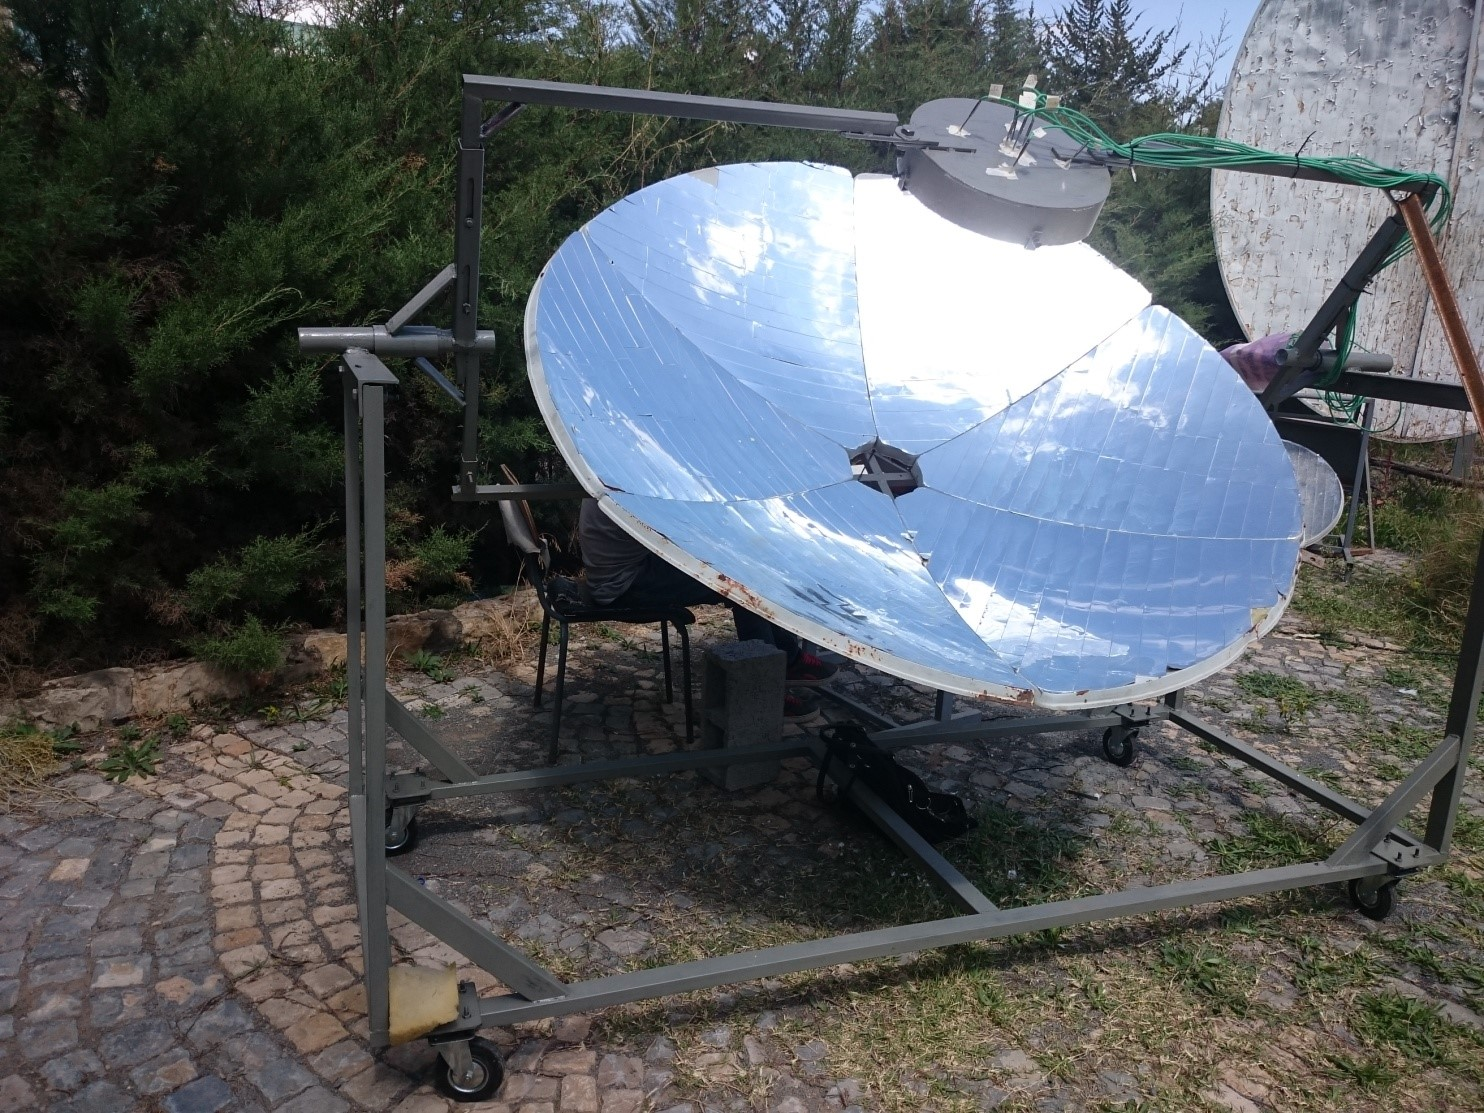 A ray tracer model for analysis of solar concentrating systems